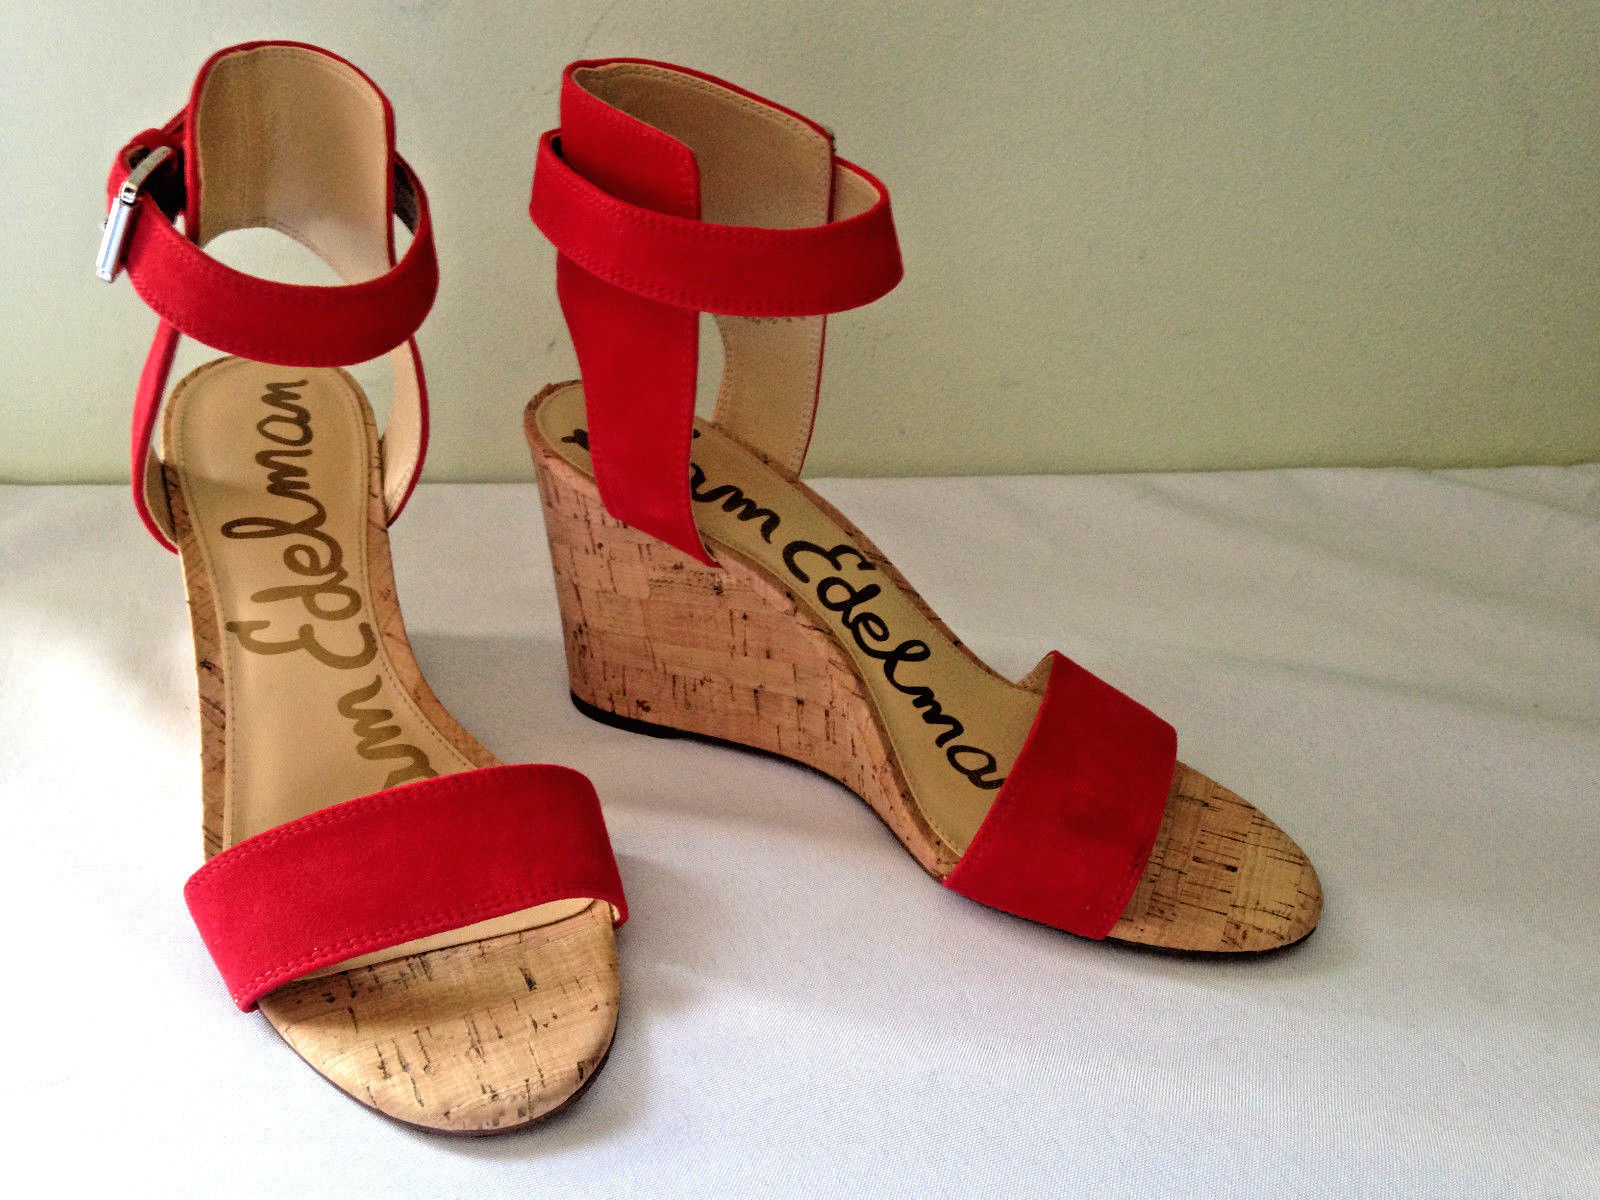 ddbbbb3f8c2 NEW Sam Edelman Red Suede Leather WILLOW and 50 similar items. 57